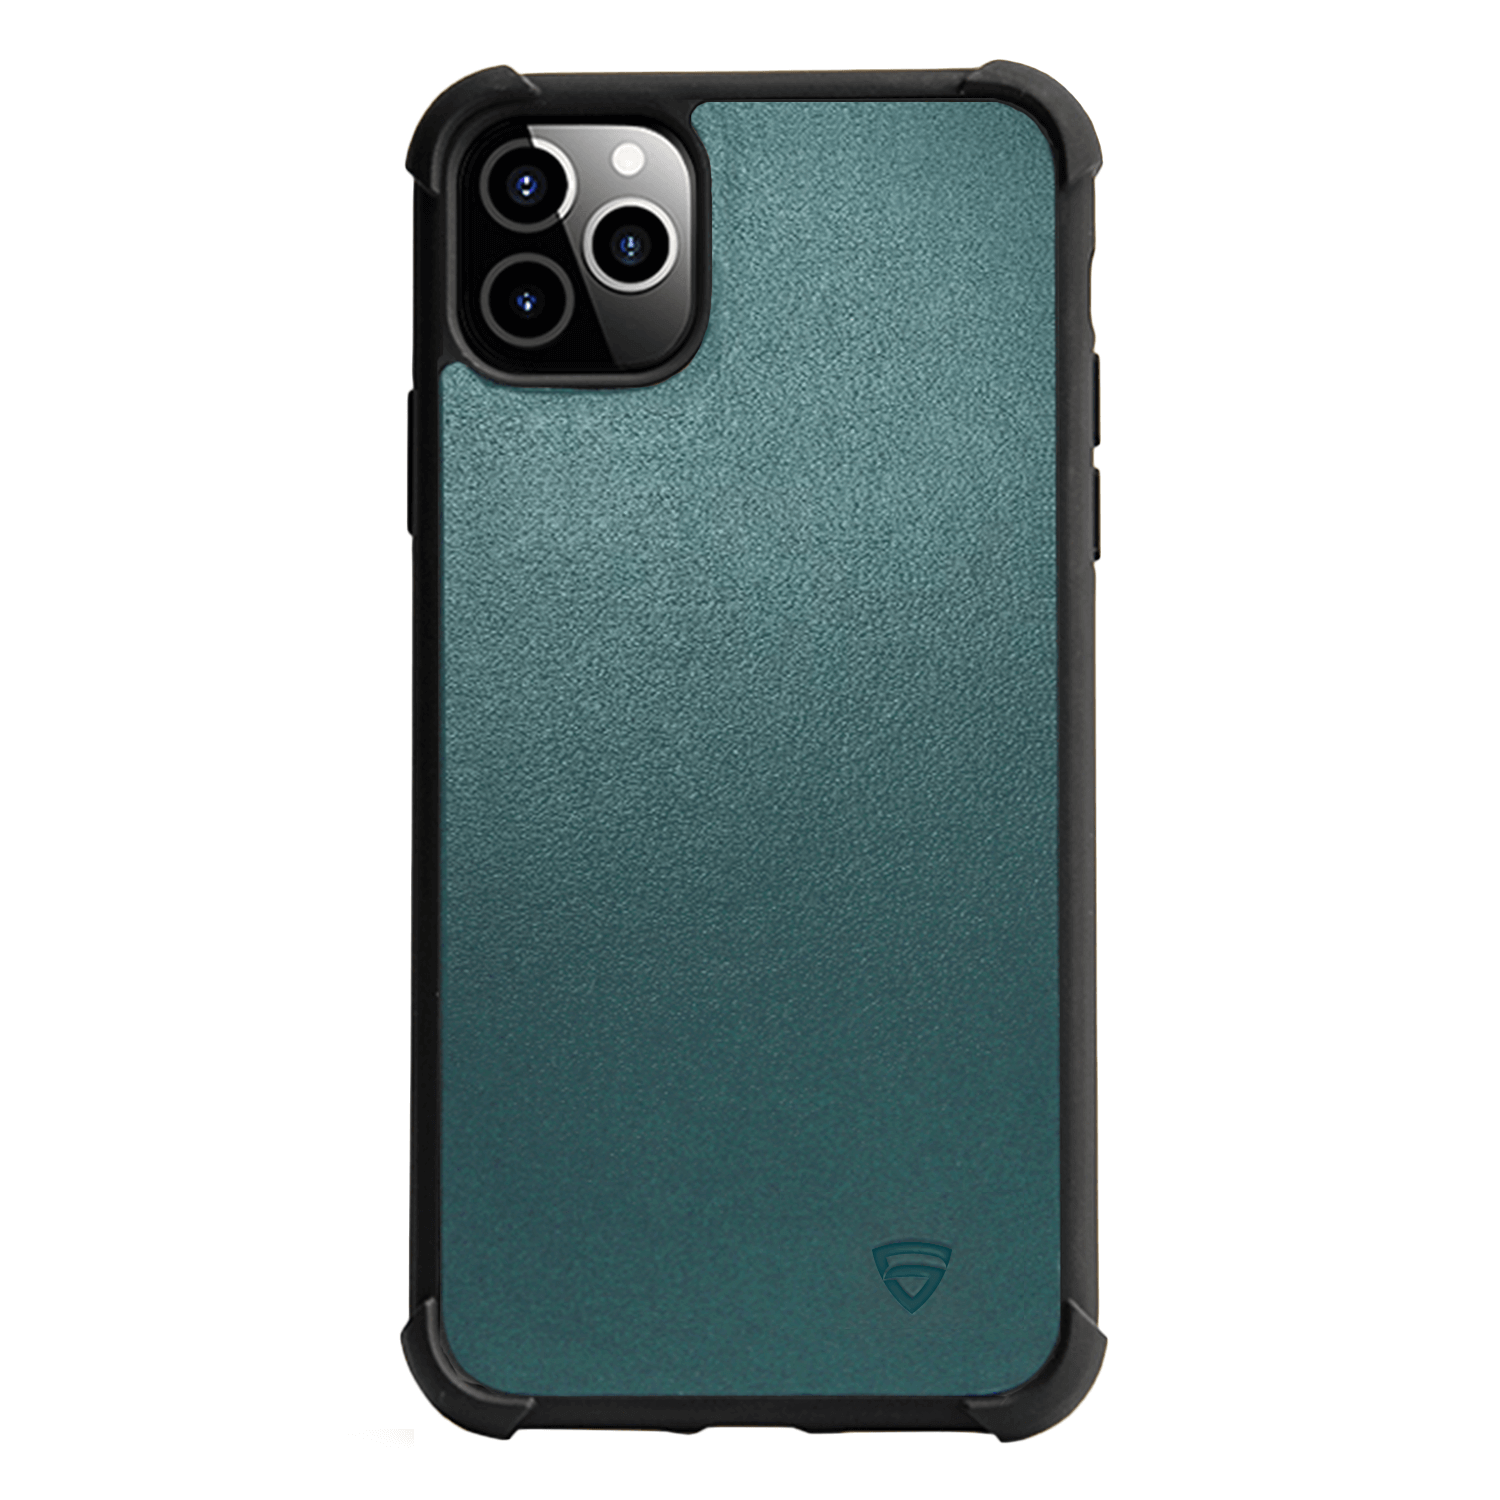 RAEGR iPhone 11 Pro Max Elements Armor Protective Case/Cover with Genuine Leather